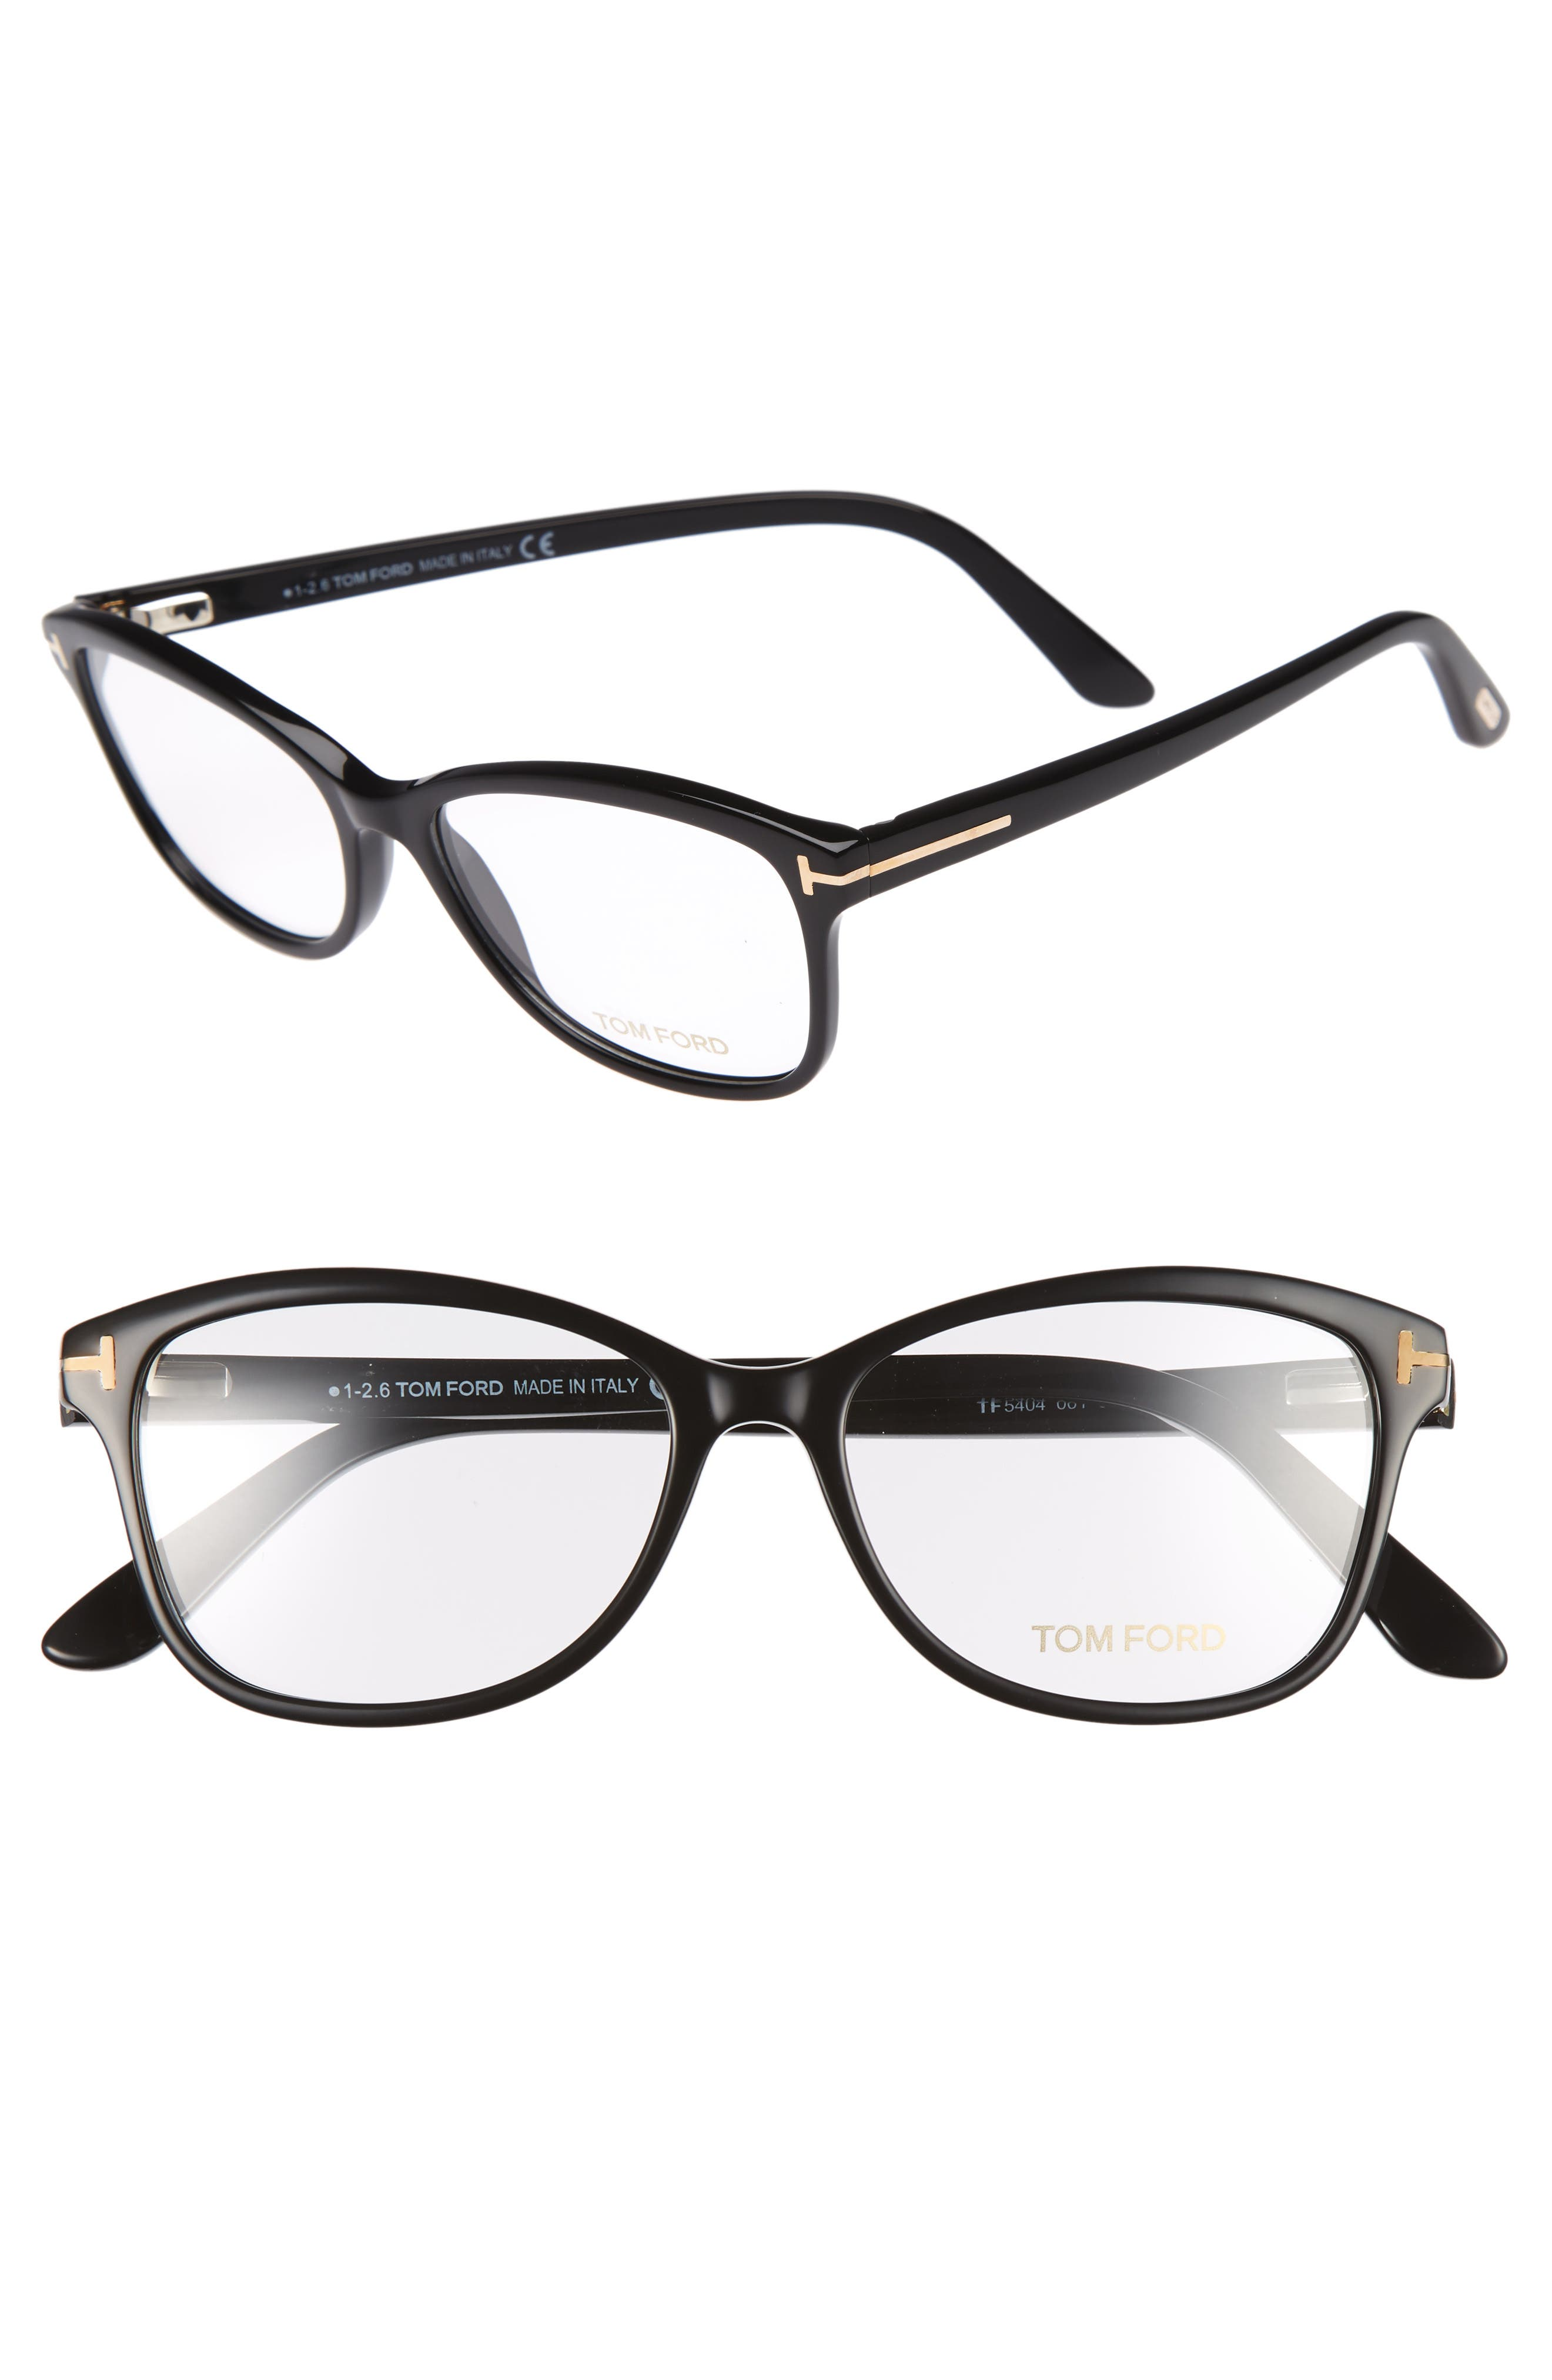 Tom Ford 53mm Optical Glasses